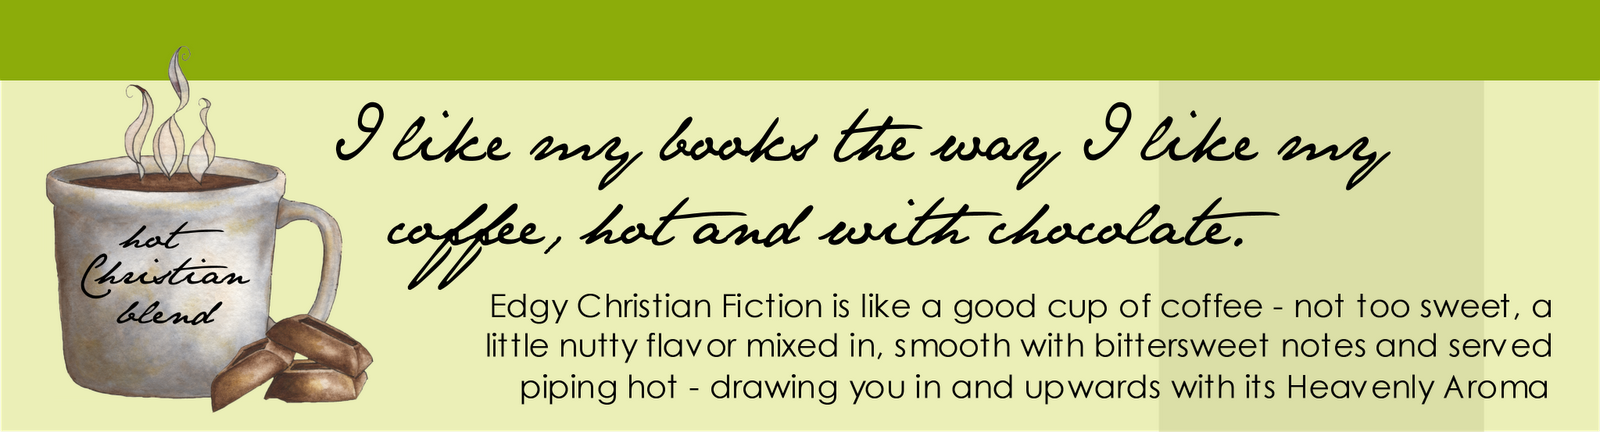 Hot Christian Books